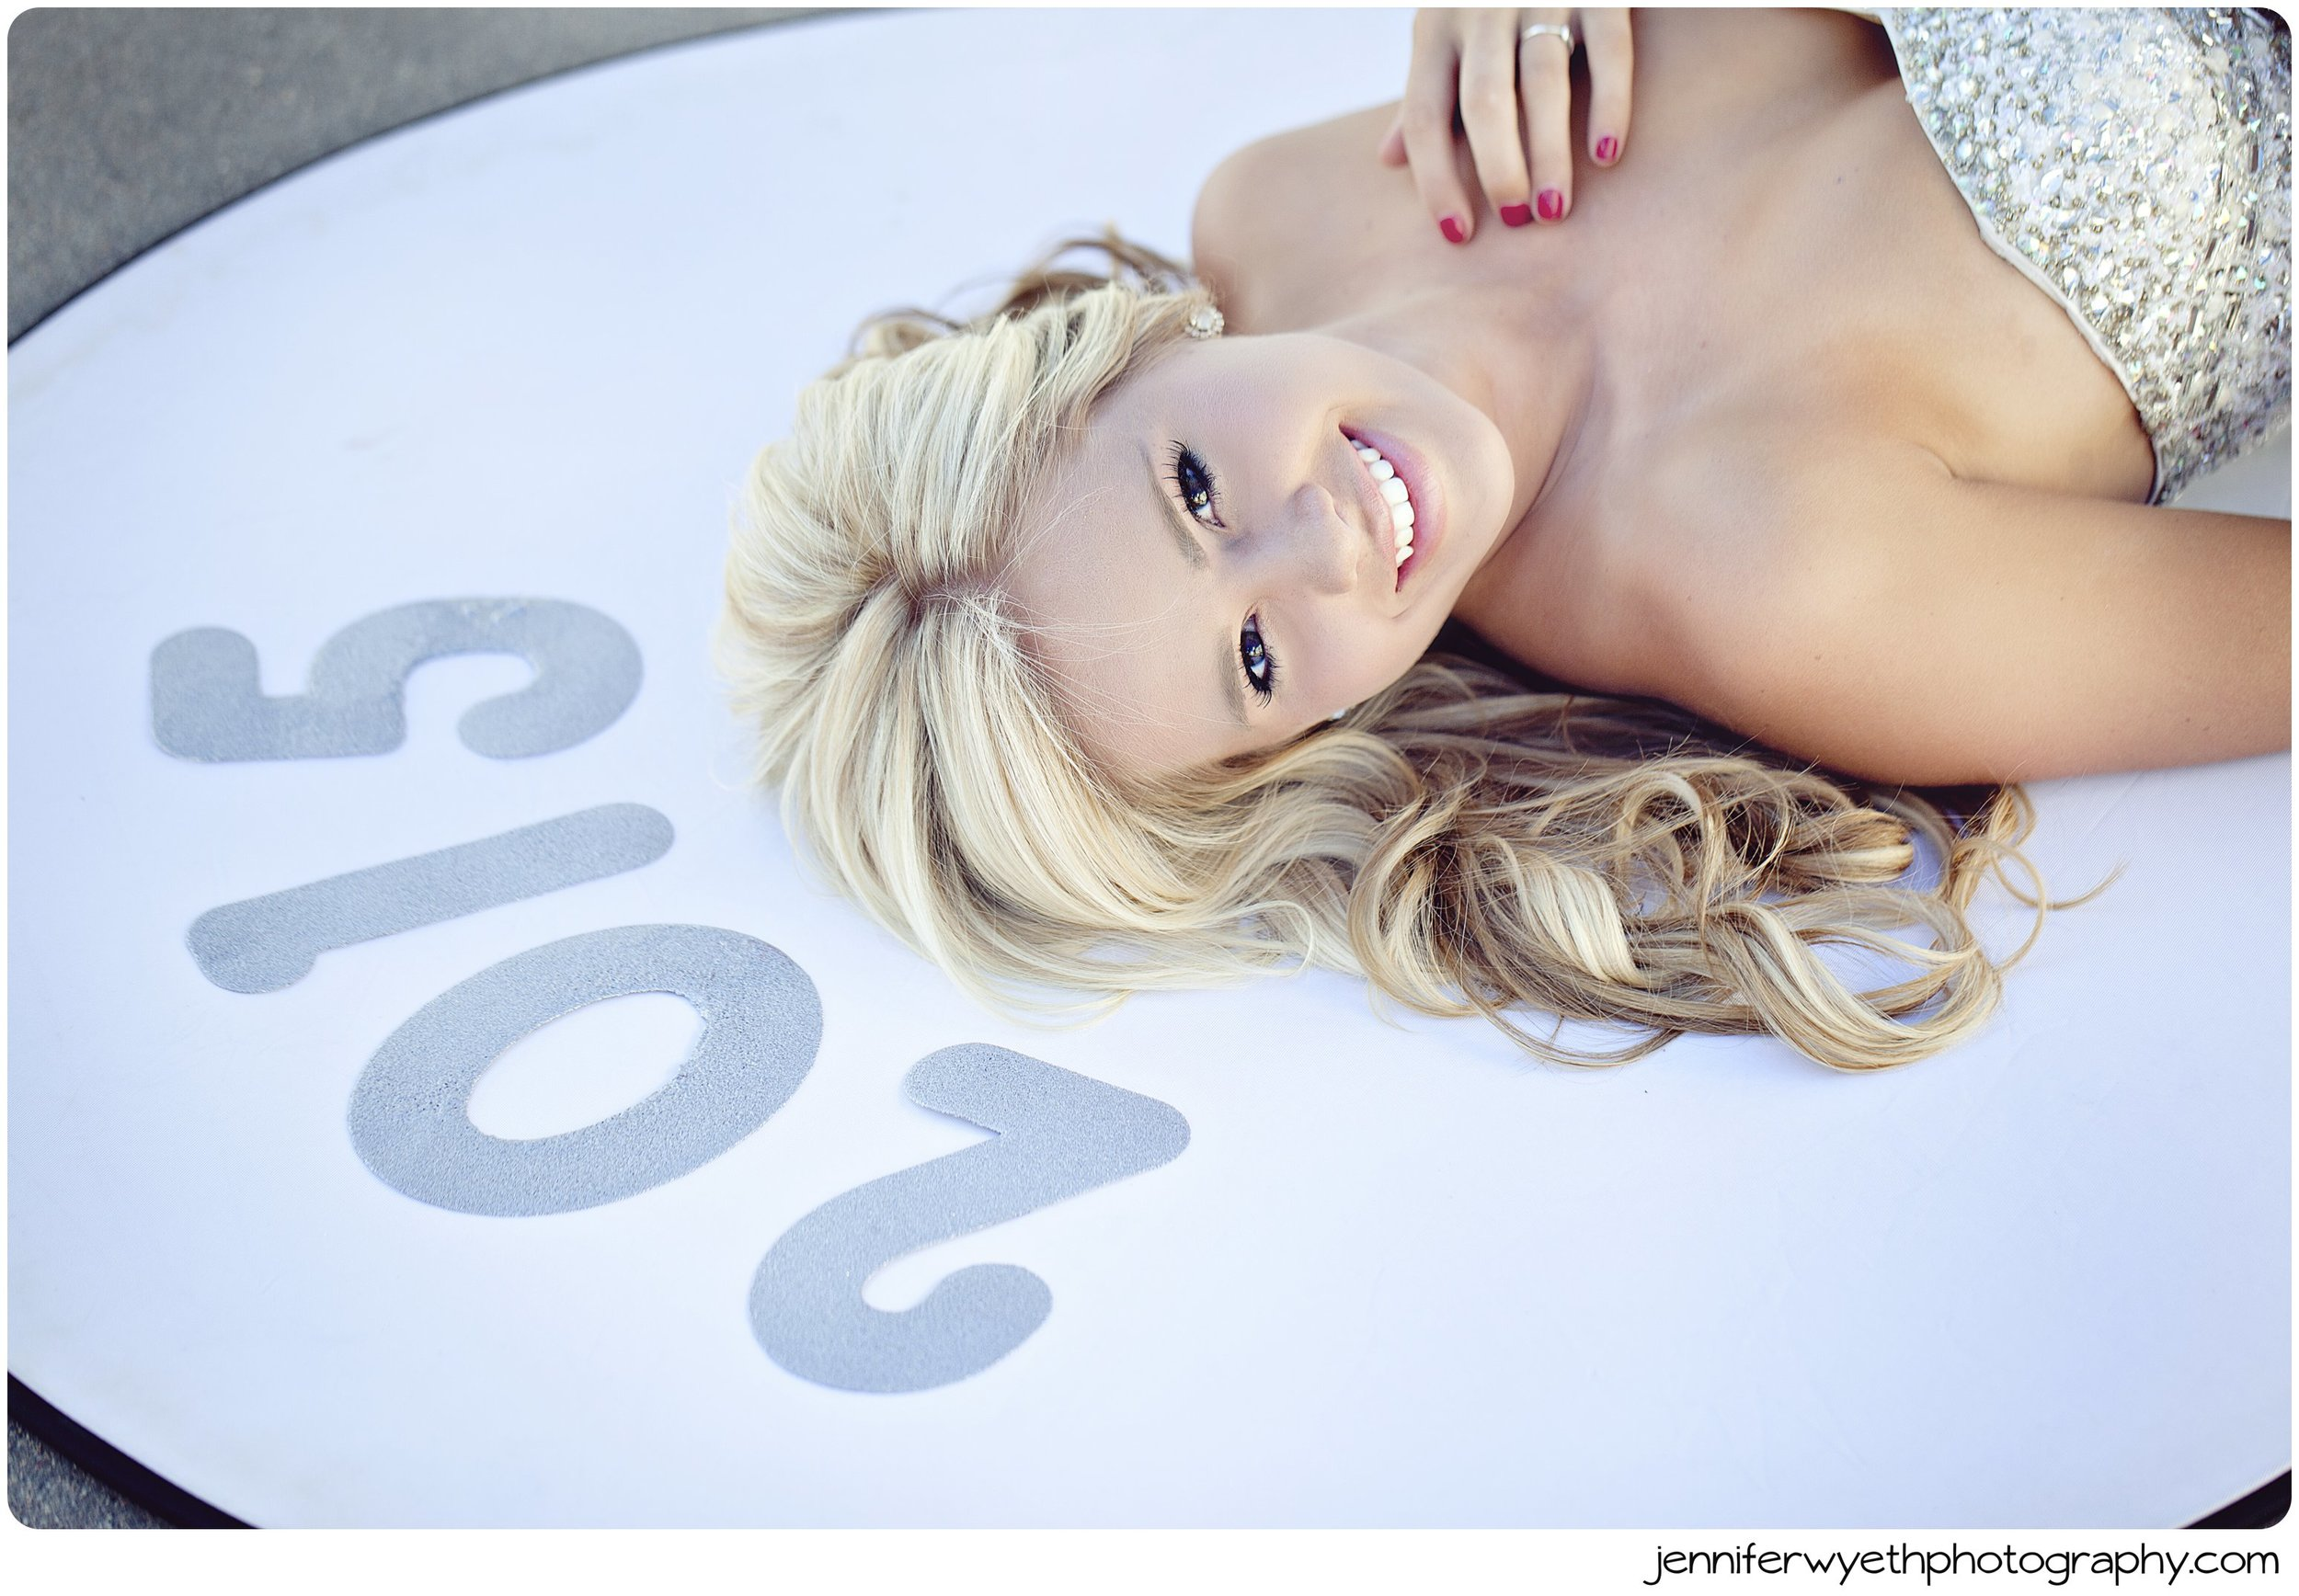 blond teen girl laying down with 2015 sign